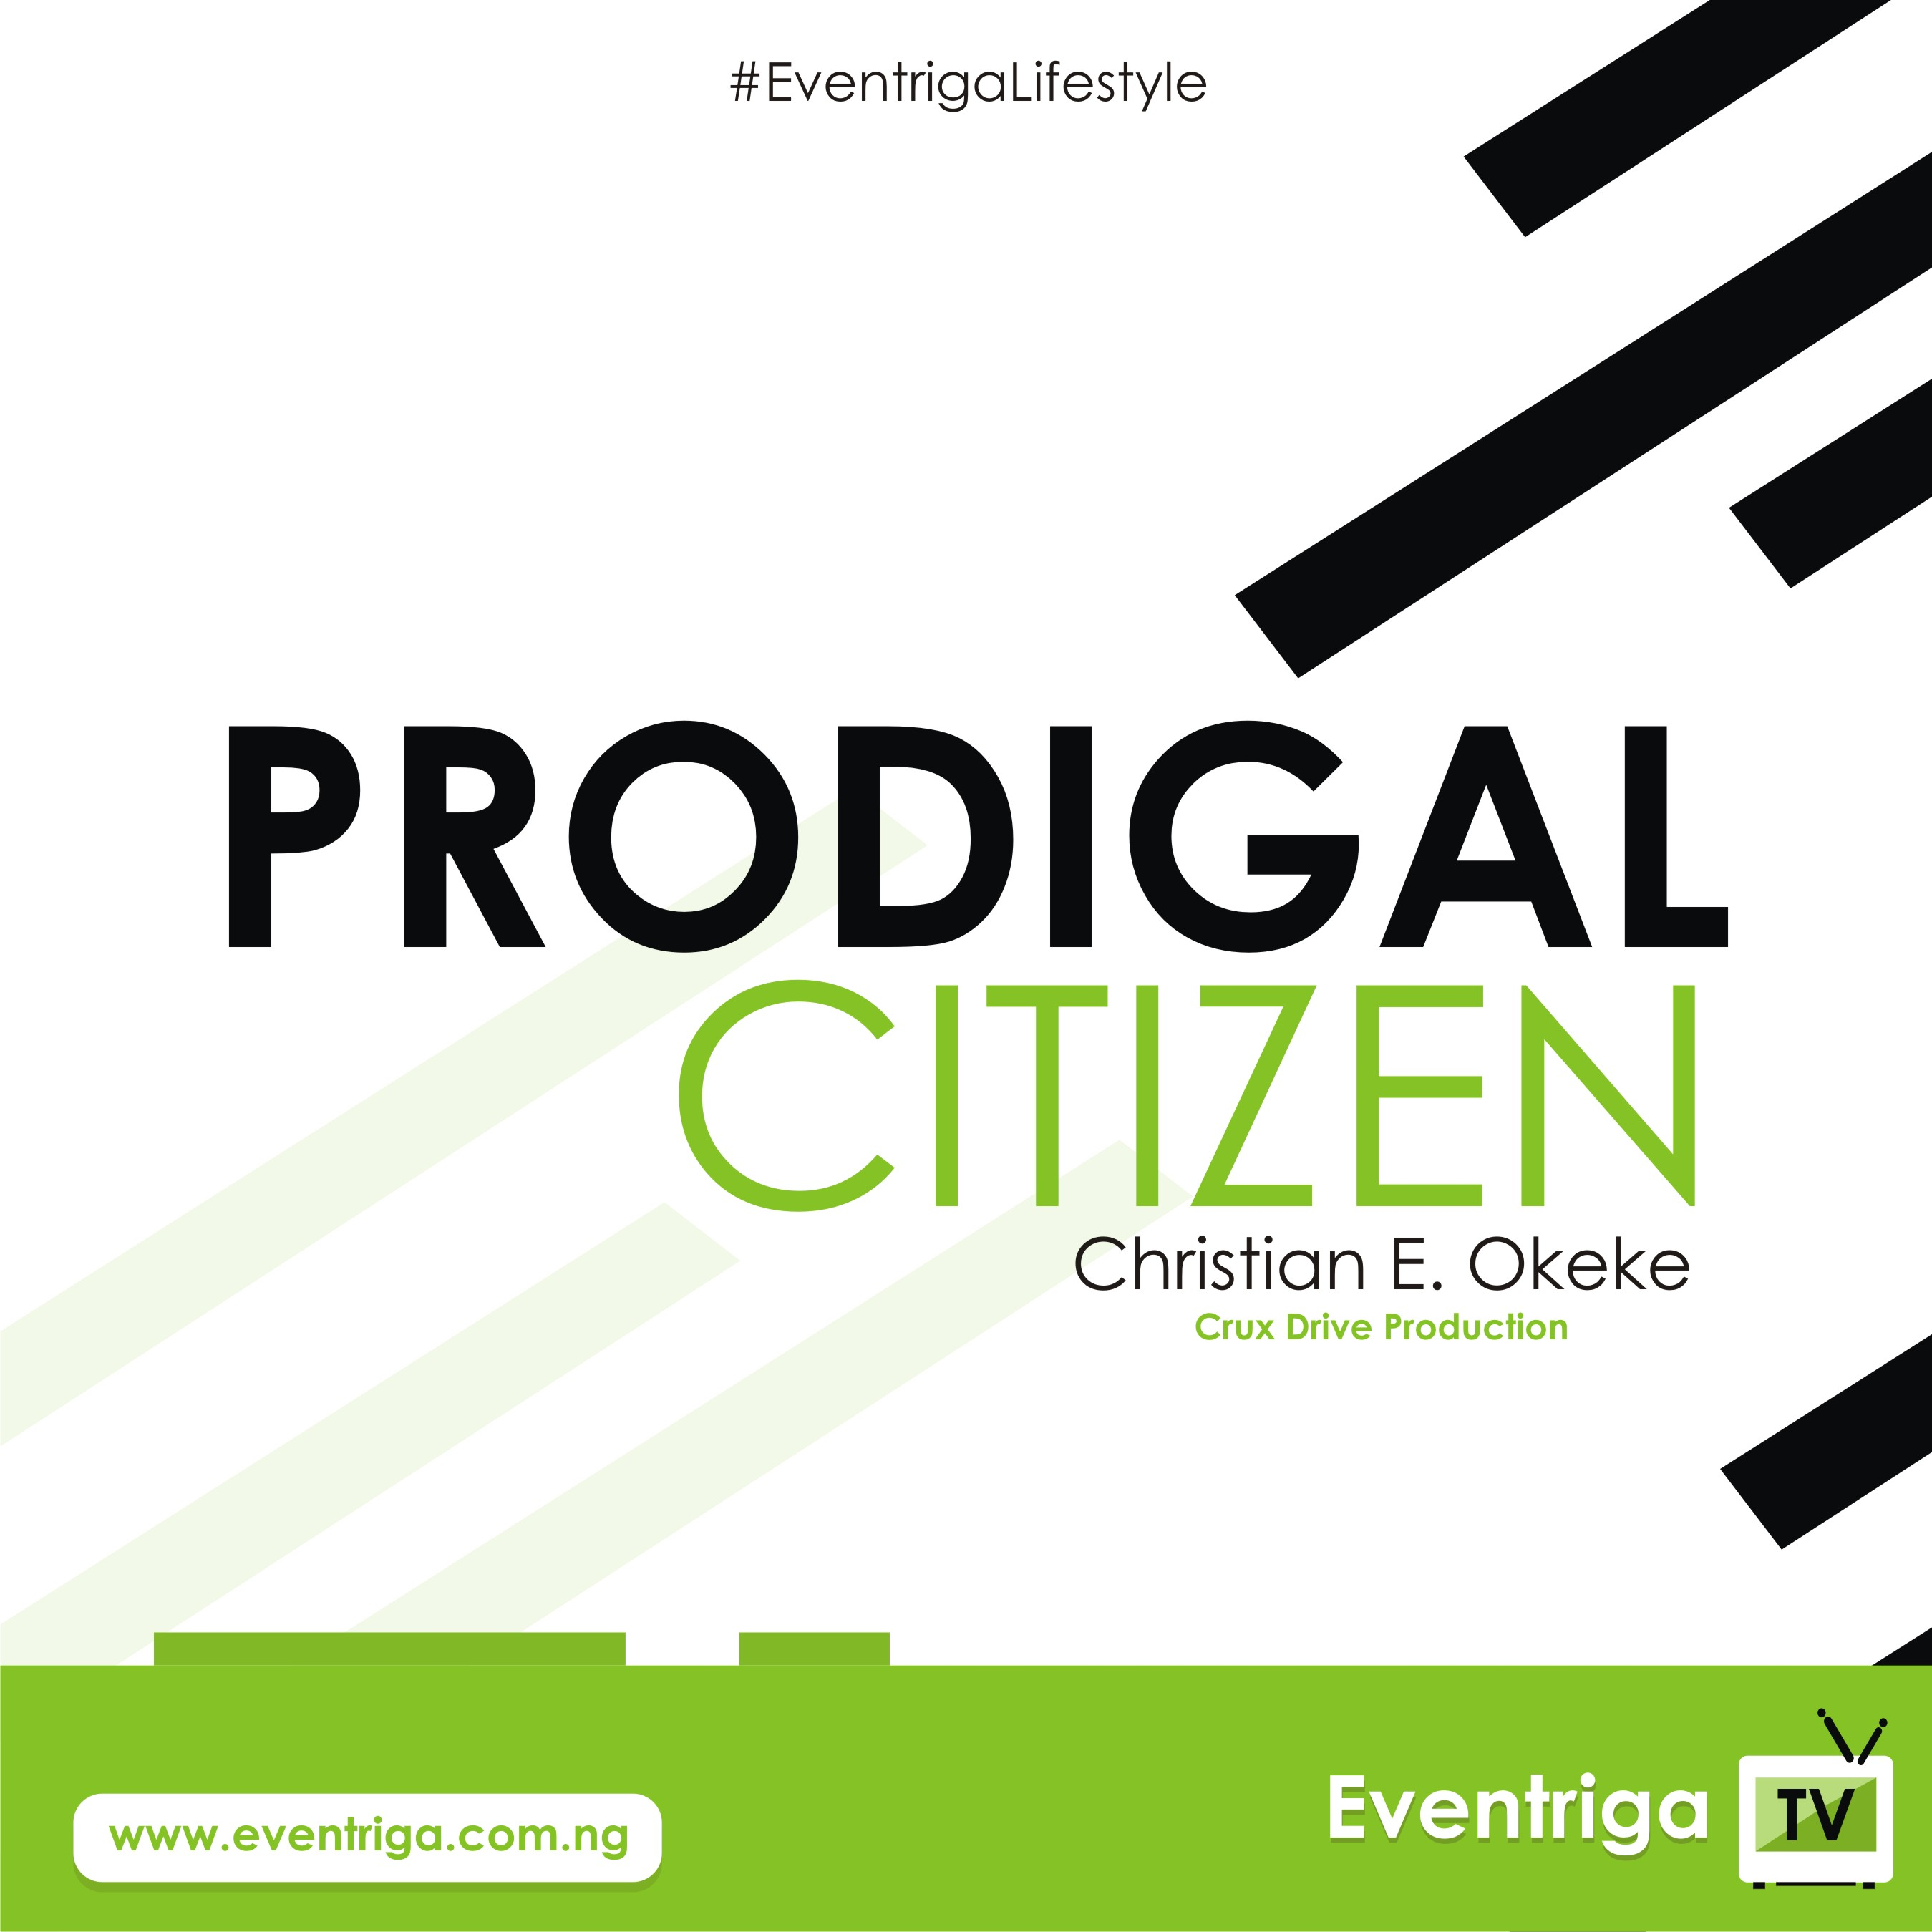 prodigal citizen